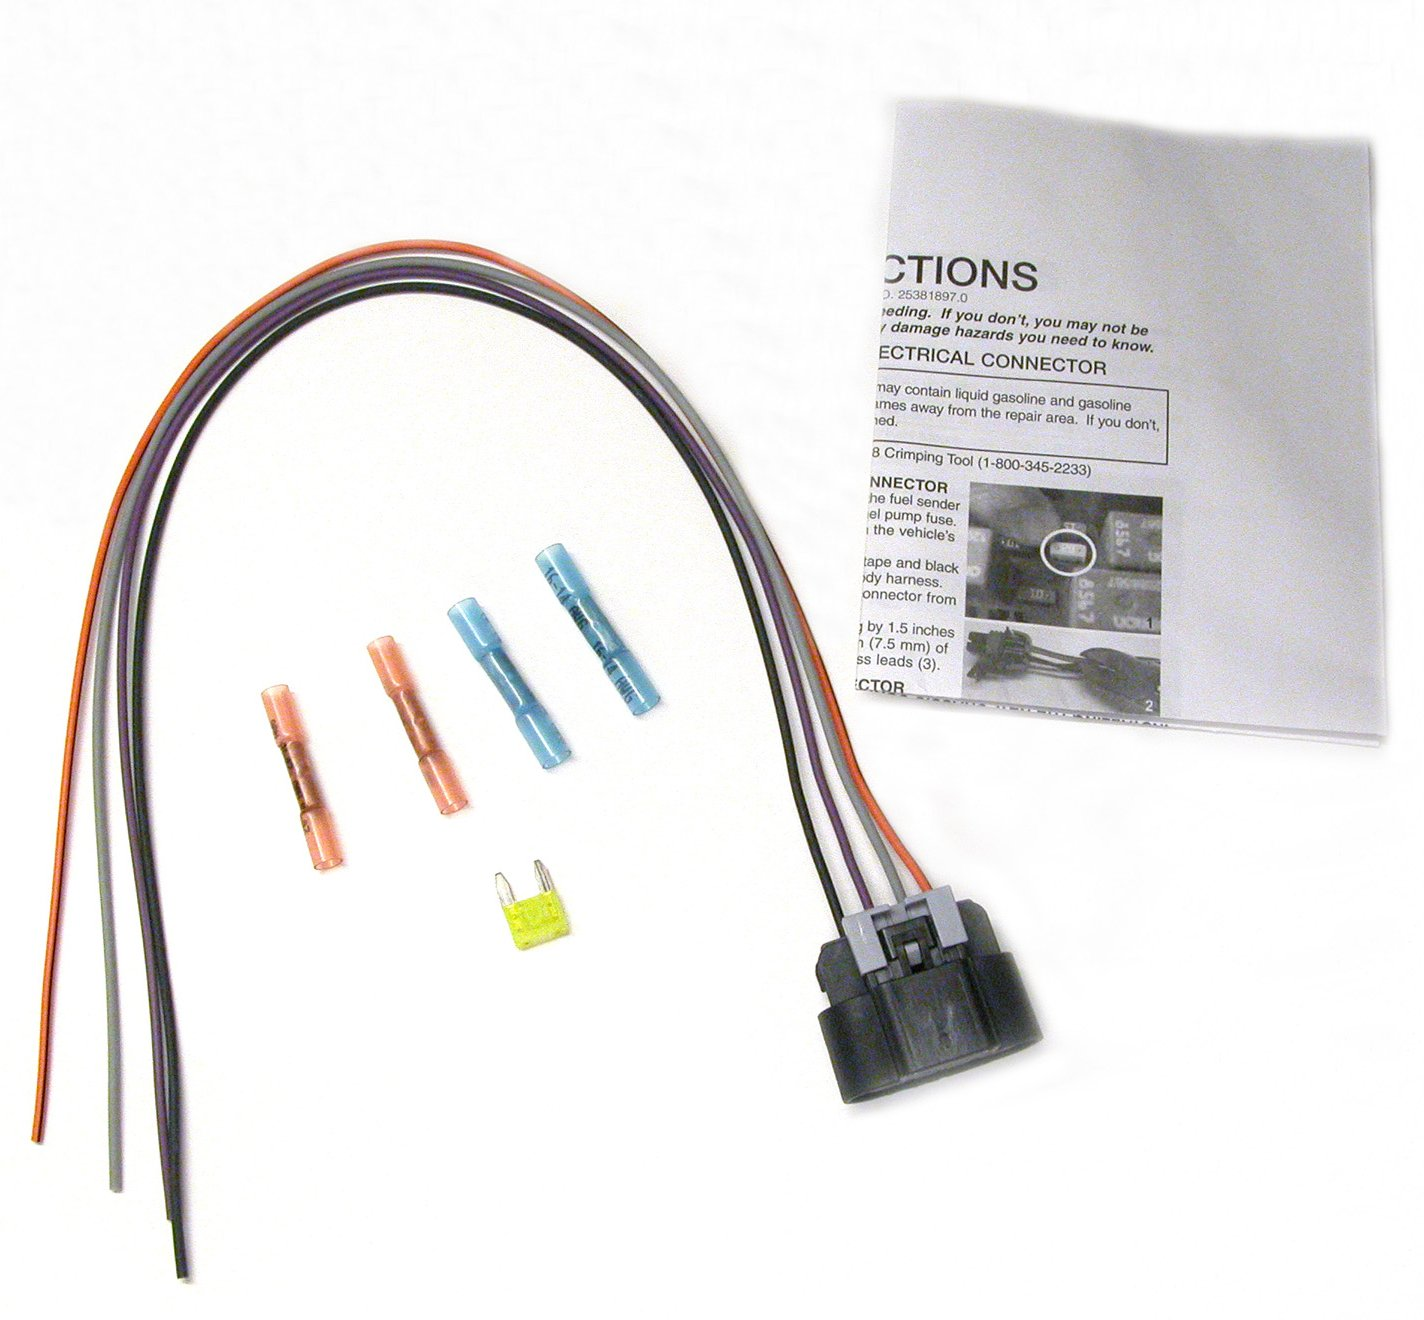 71Grf8PrFuL._SL1424_ amazon com delphi fa10003 fuel pump wiring harness automotive gmc fuel pump wiring diagram at gsmx.co